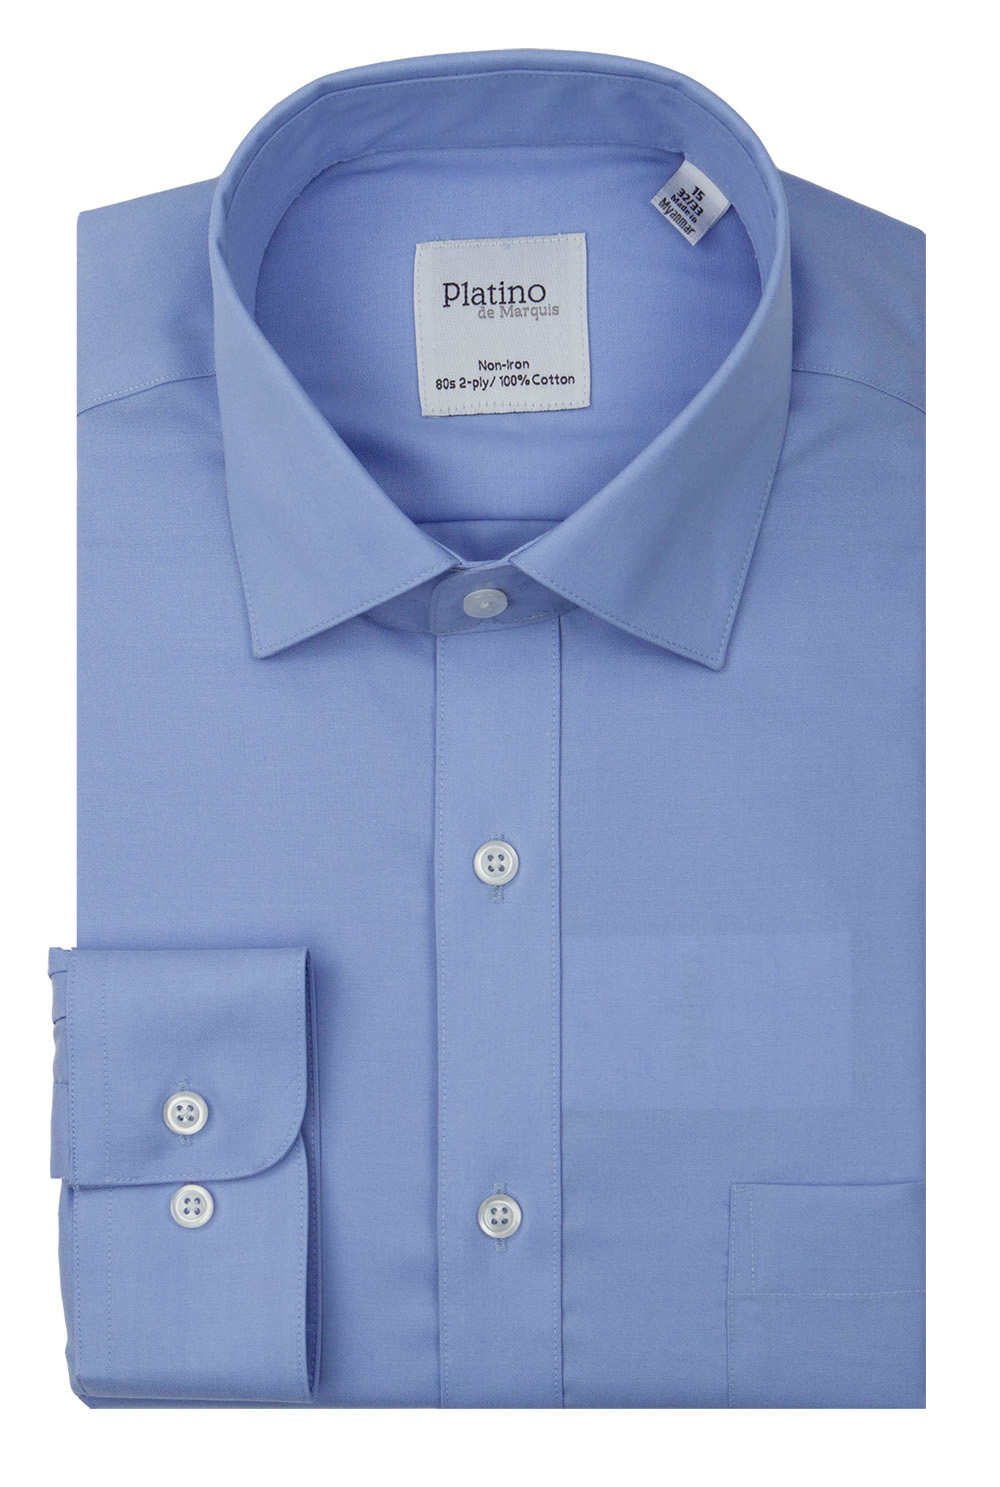 PLT 100 - Light Blue